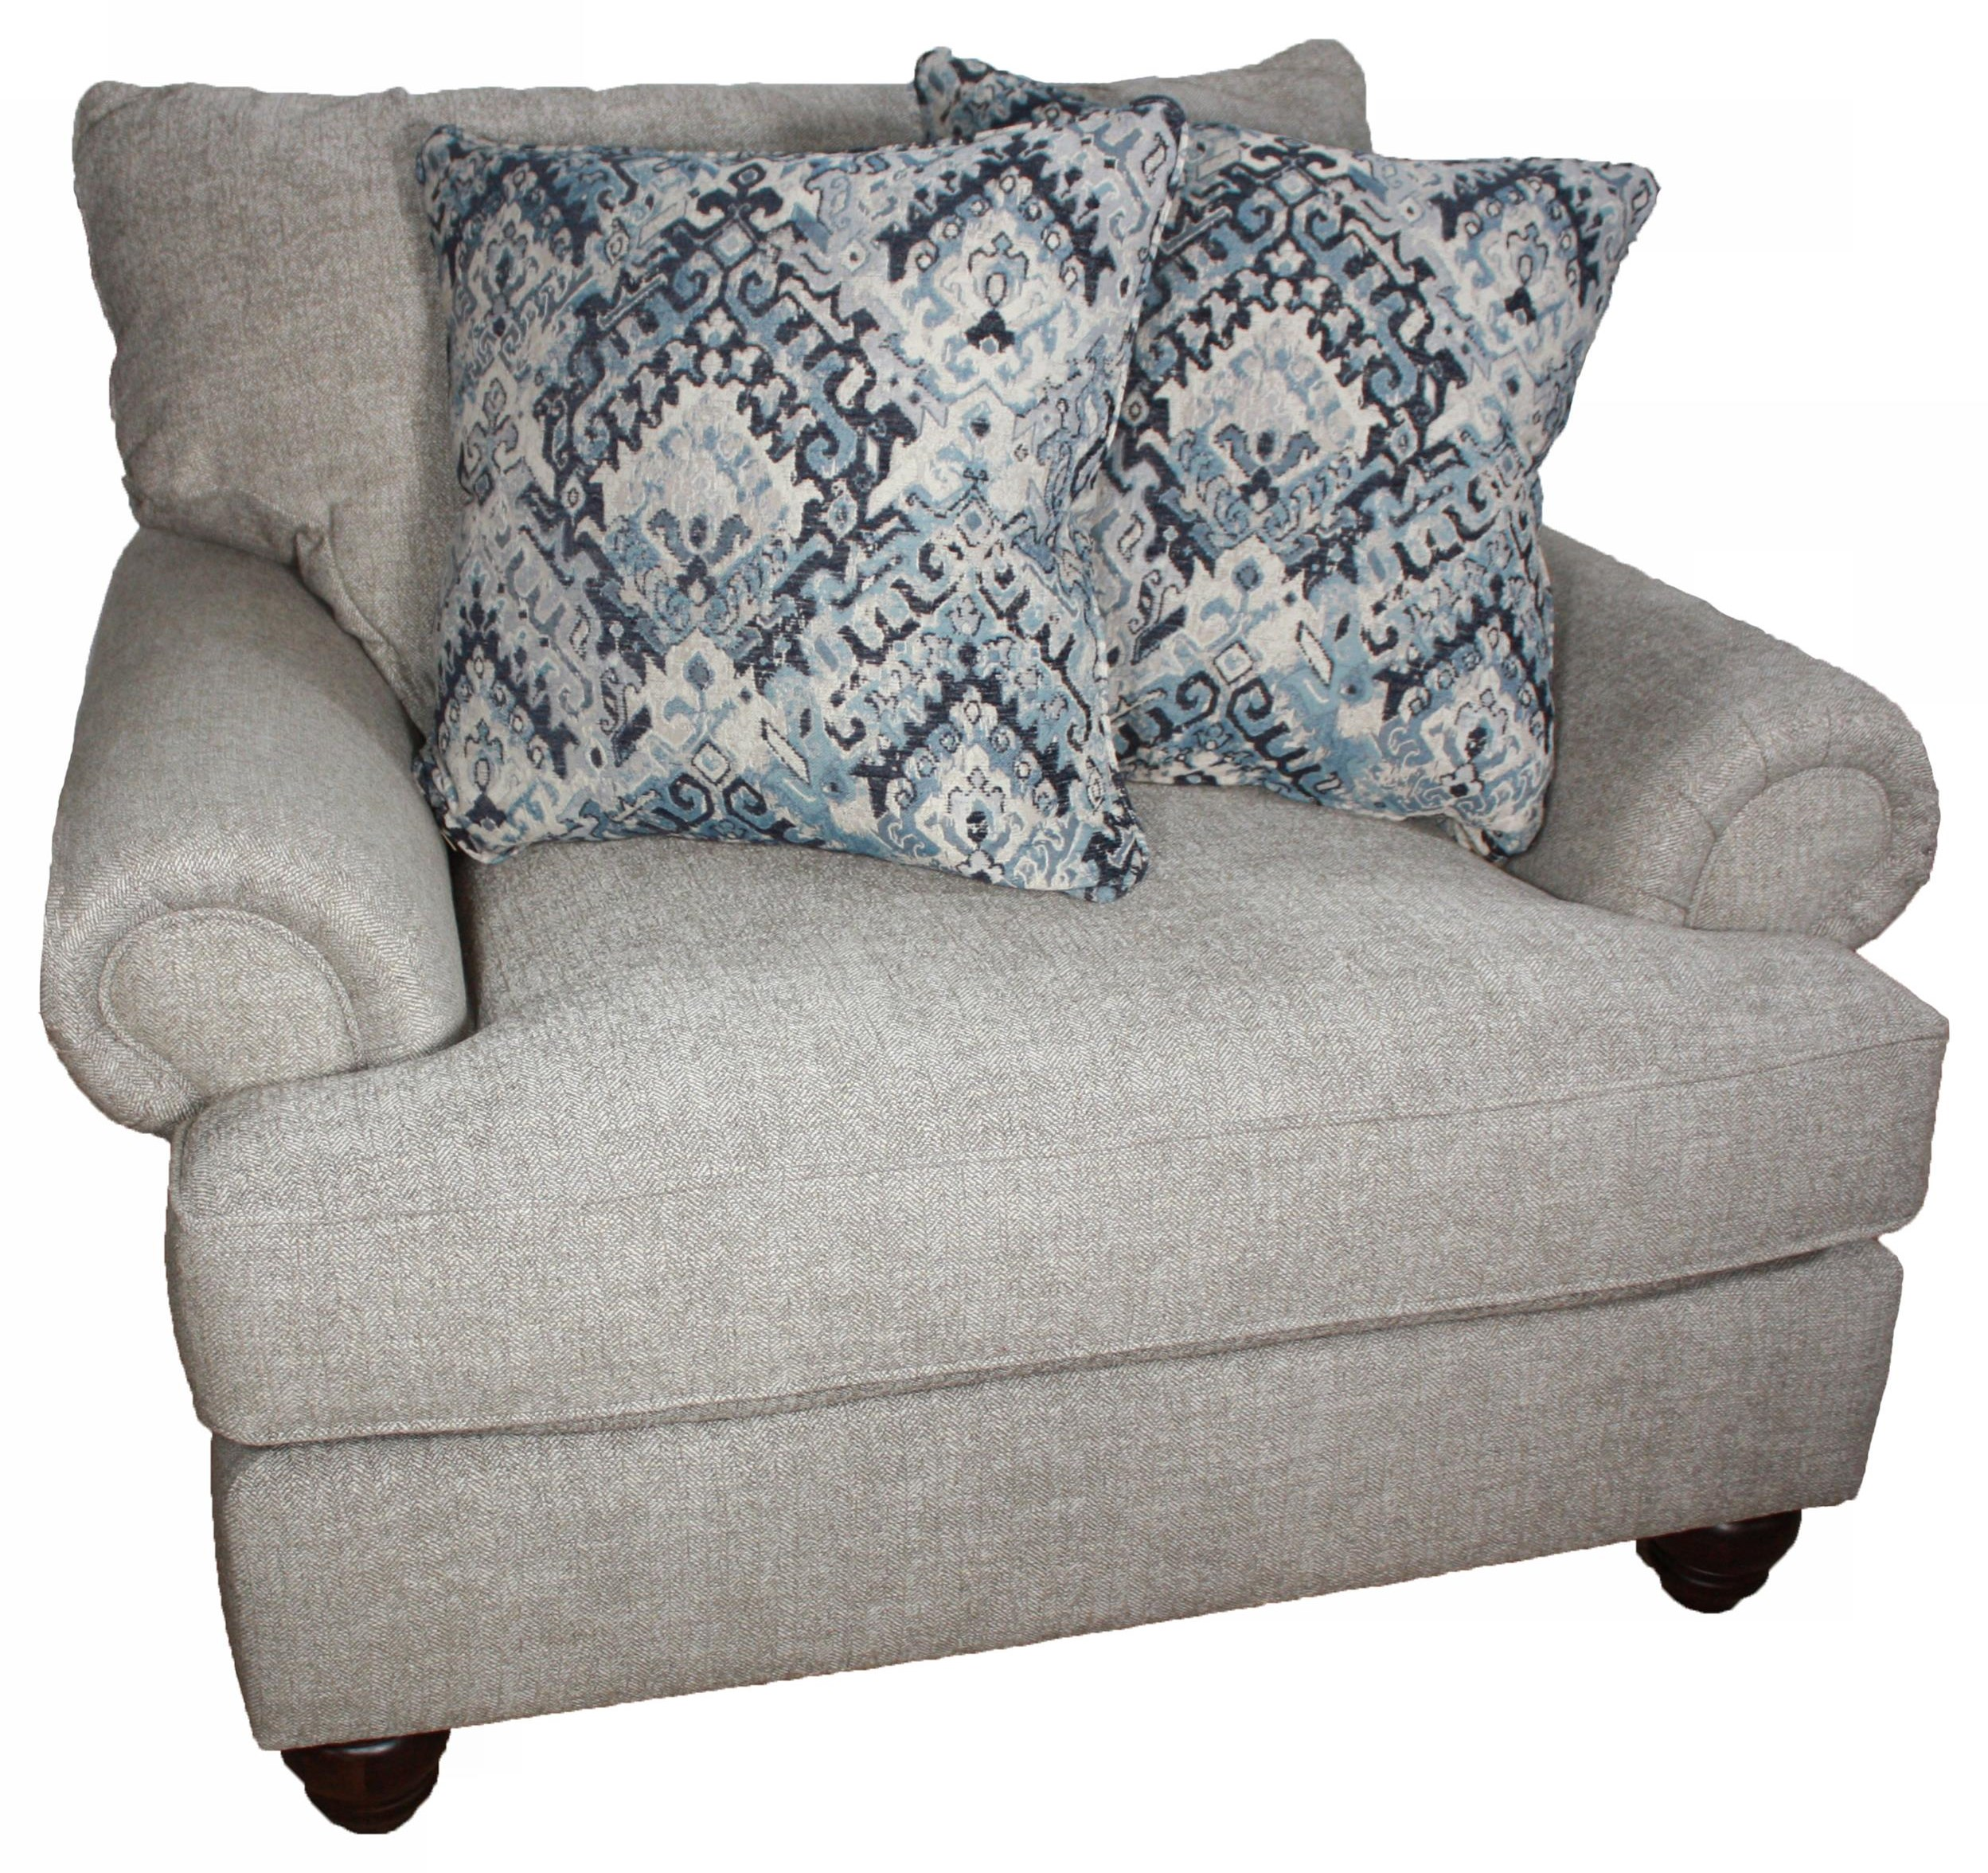 7970 CHAIR AND A HALF by Craftmaster at Esprit Decor Home Furnishings